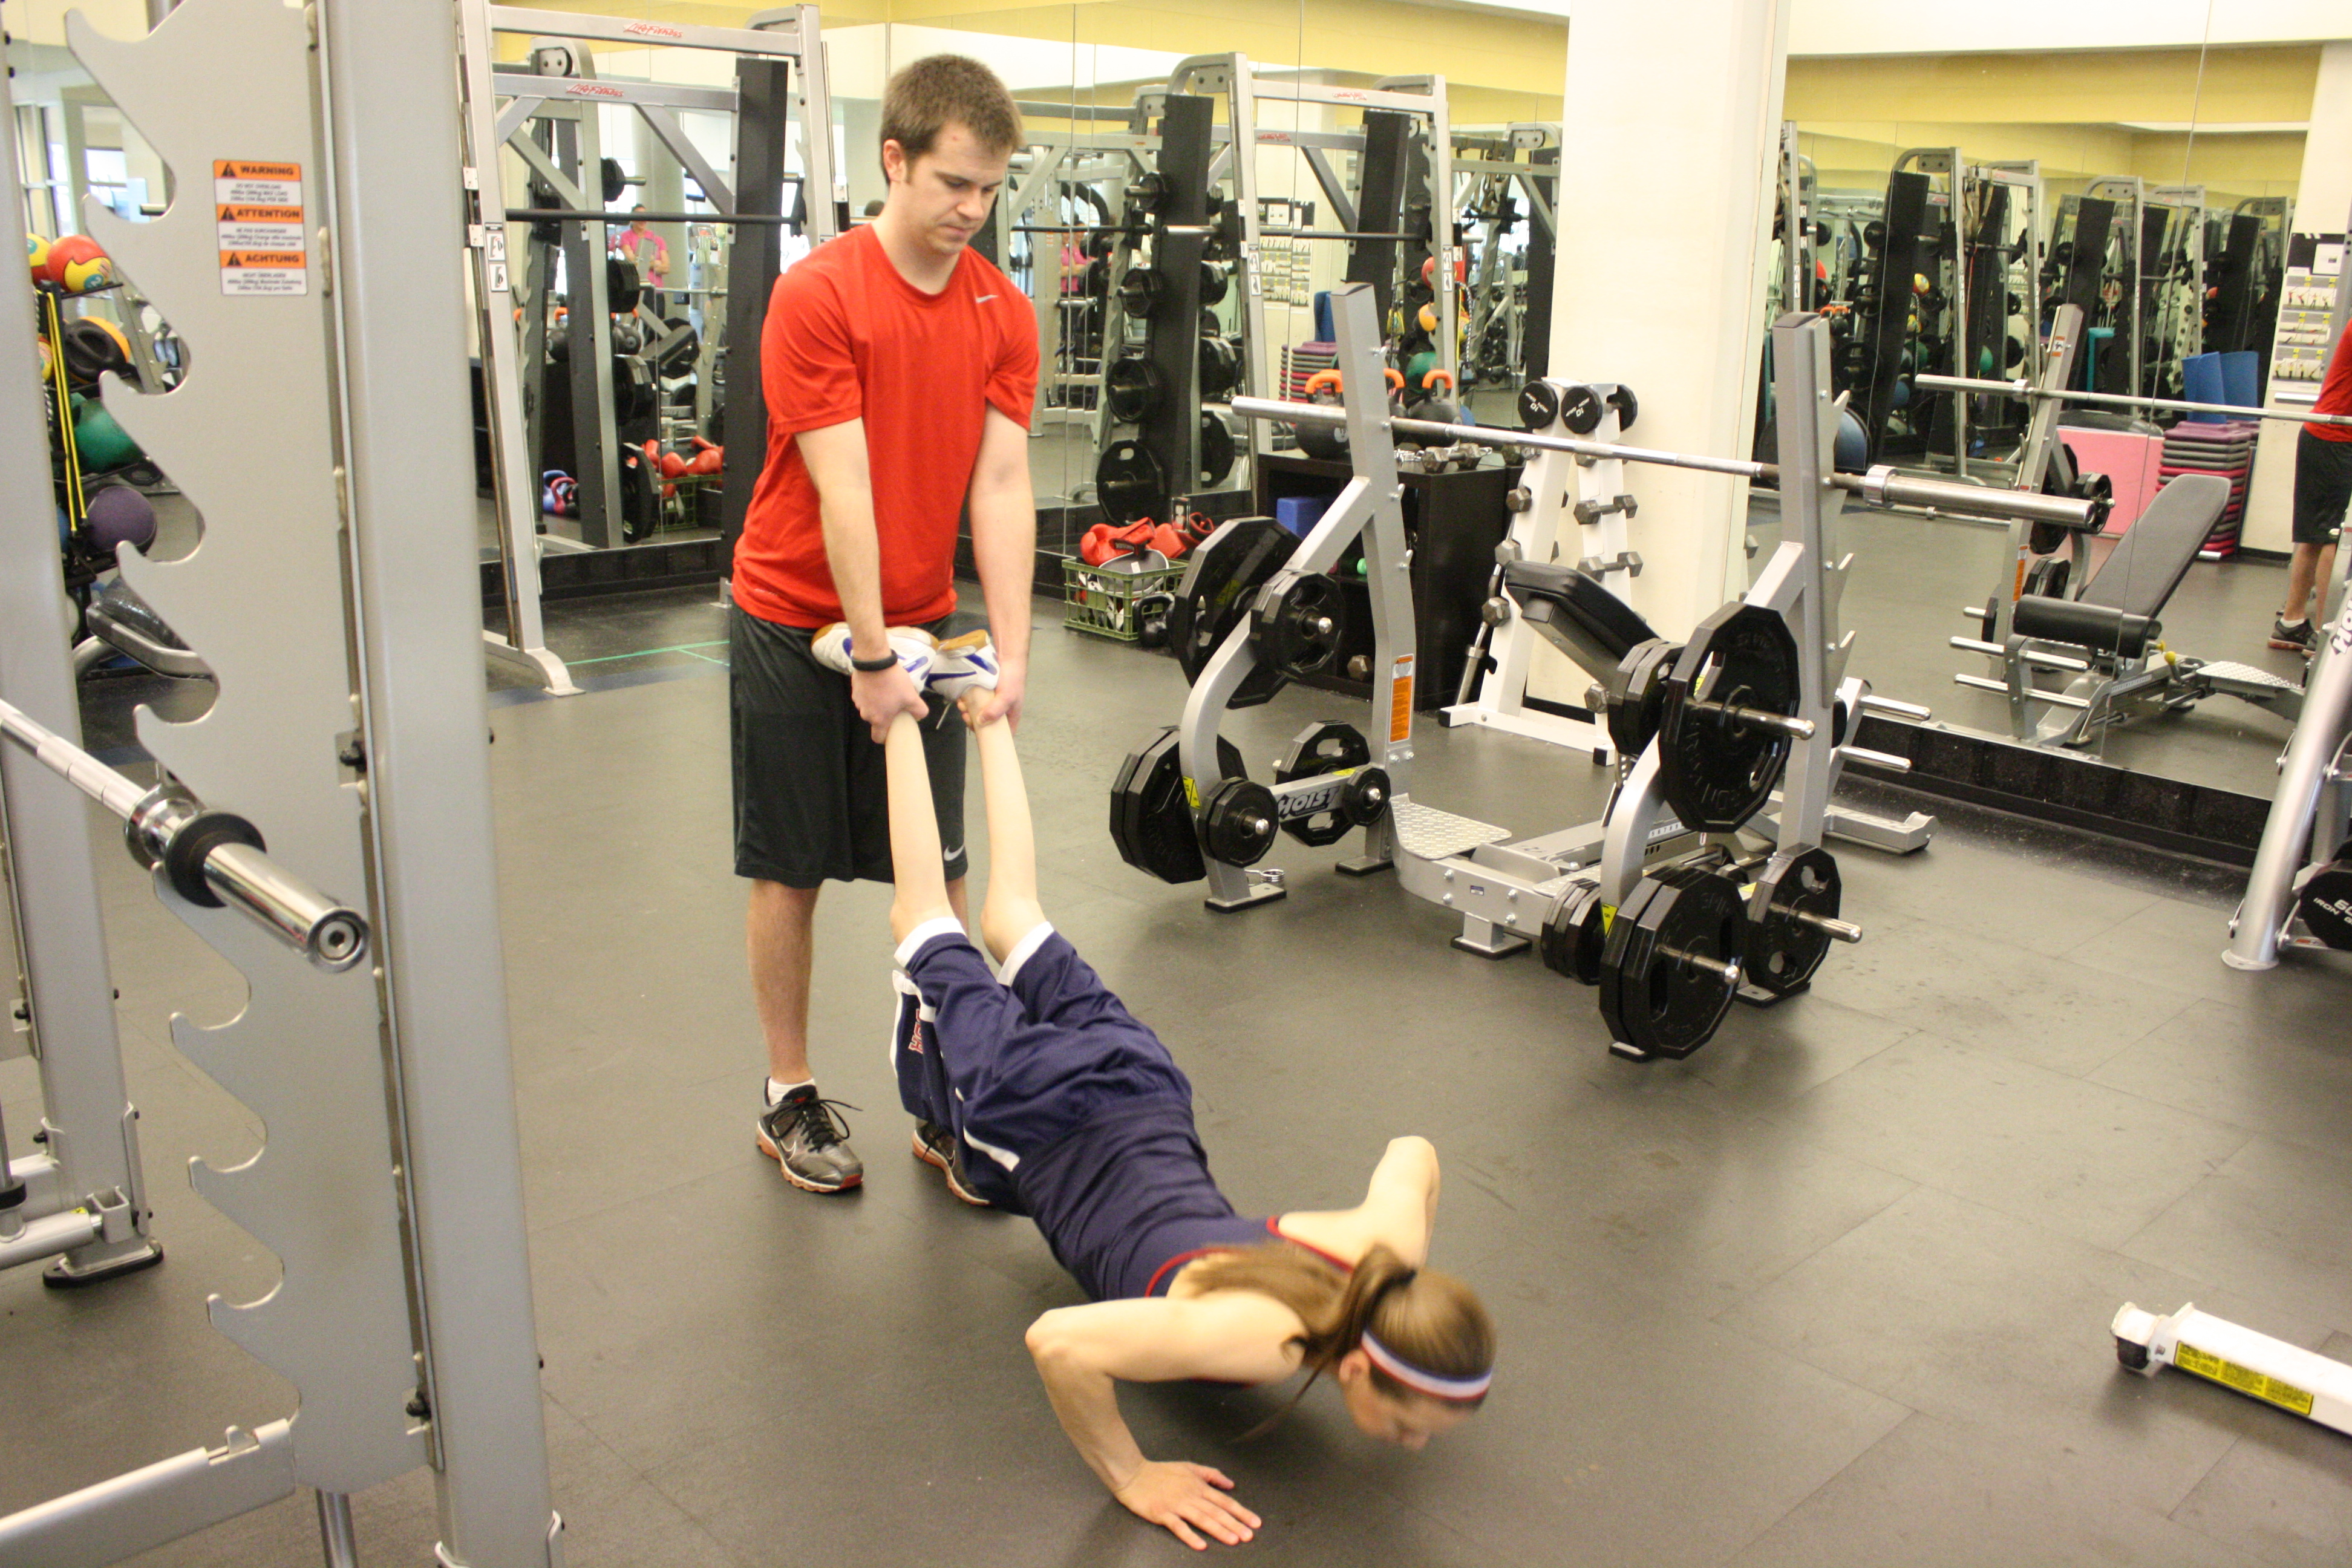 trainer assists client with pushups